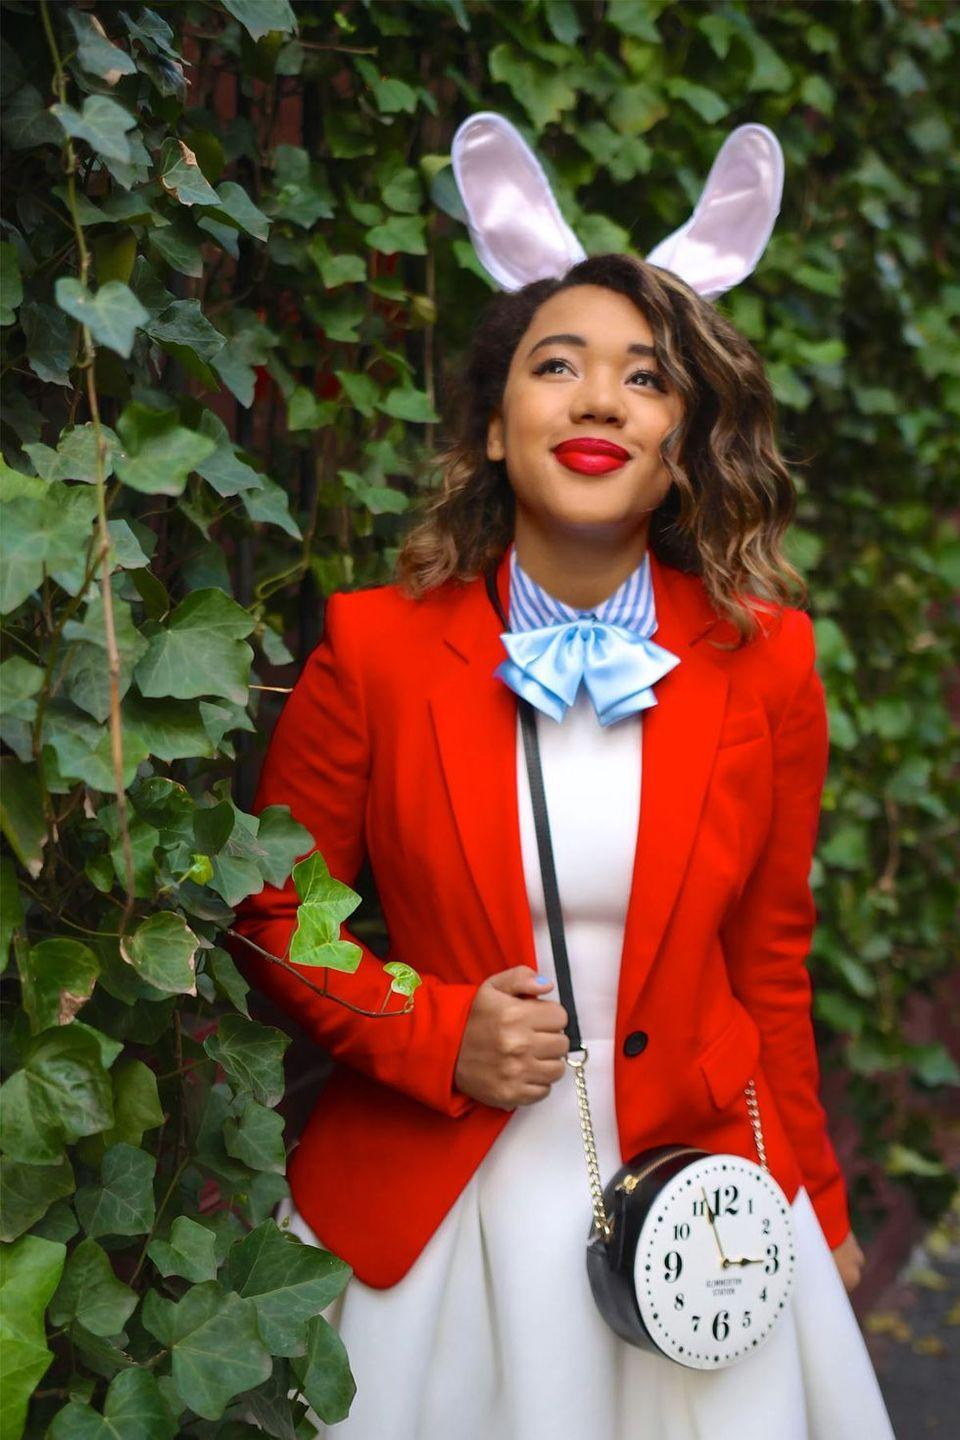 "<p>Head down the rabbit hole — just make sure you're not late for any important dates! </p><p><em><a href=""http://www.colormecourtney.com/disney-diy-2-easy-halloween-costume"" rel=""nofollow noopener"" target=""_blank"" data-ylk=""slk:Get the tutorial from Color Me Courtney »"" class=""link rapid-noclick-resp"">Get the tutorial from Color Me Courtney »</a></em></p>"